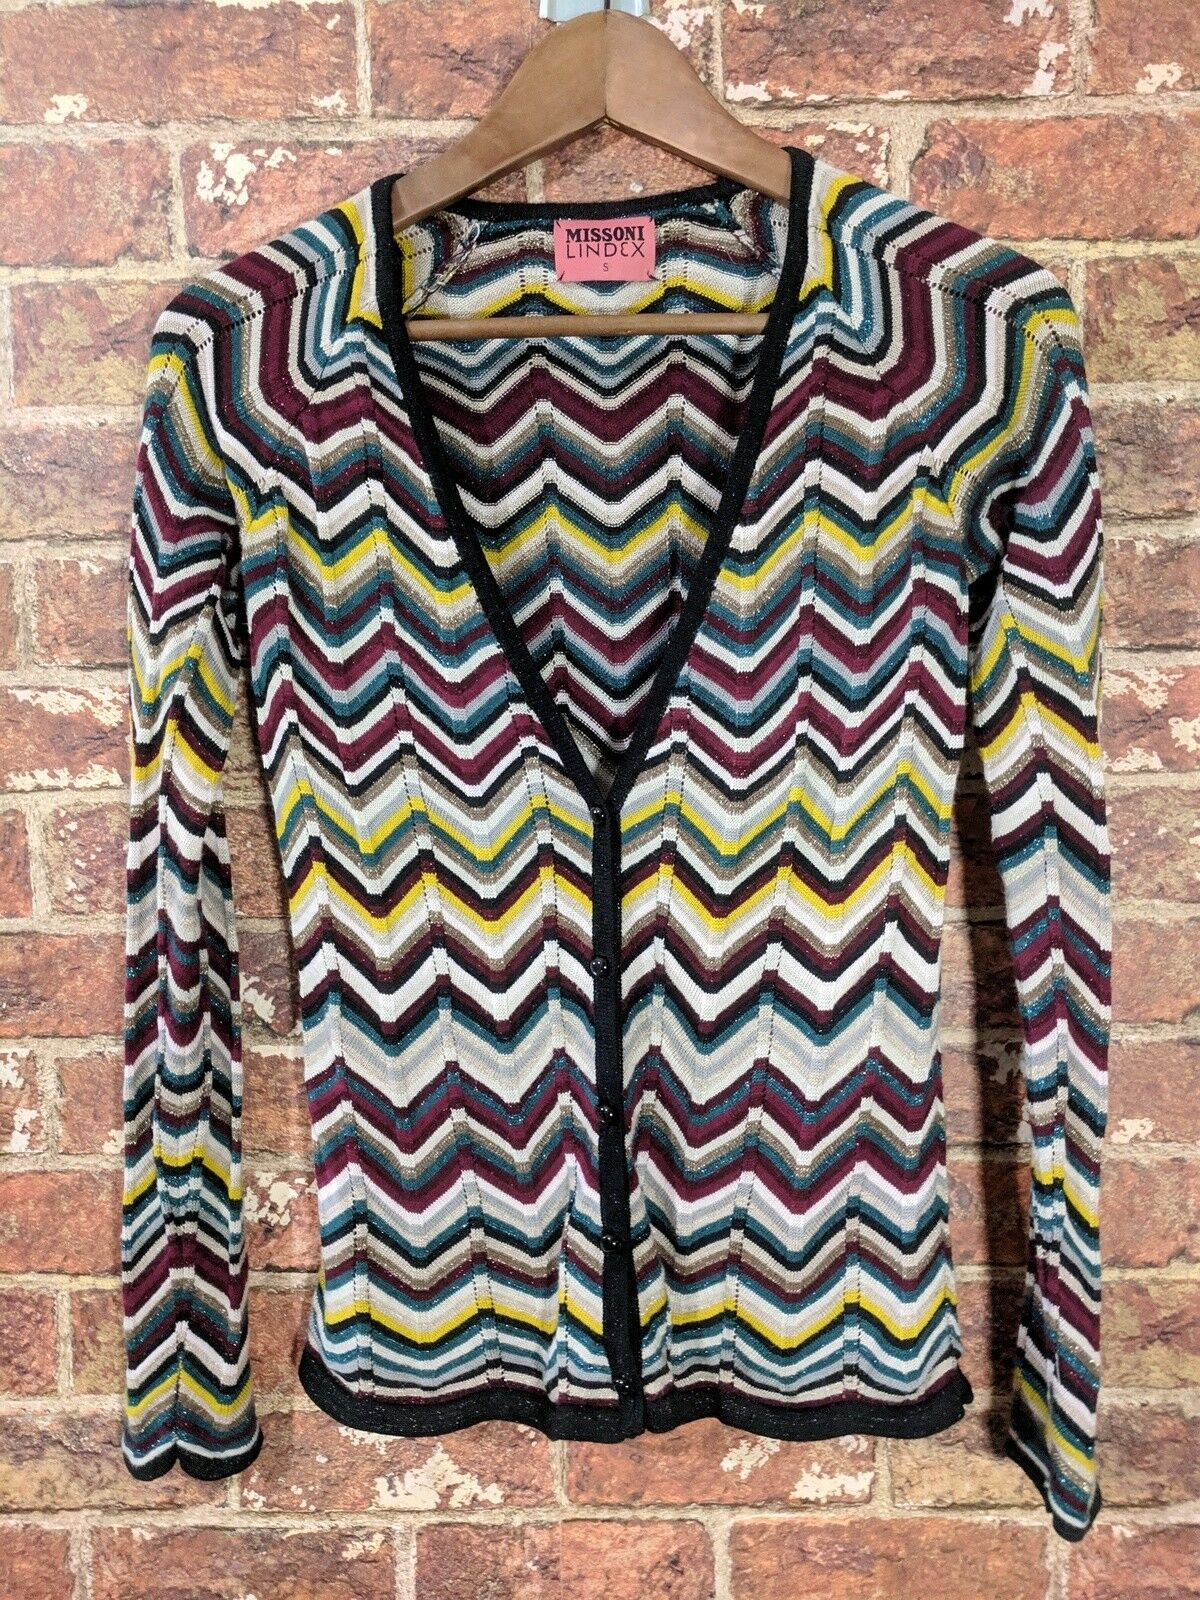 Missoni Lindex sz S Cardigan Zig Zag Chevron Multicolor Viscose Knit